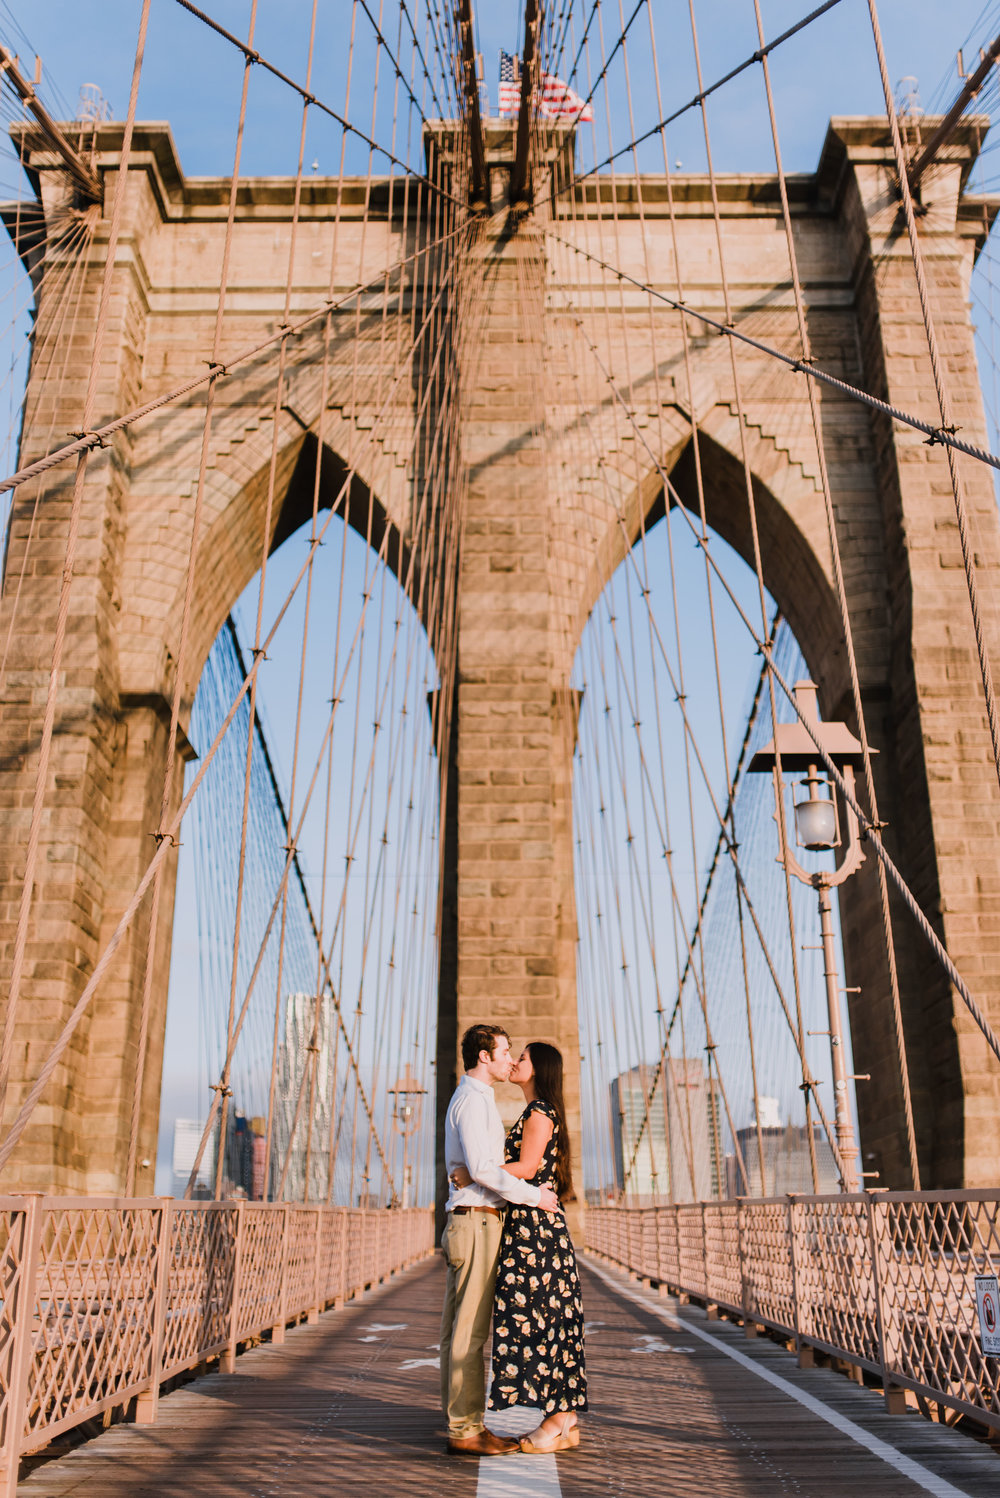 brooklyn bridge engagement shoot, couple shoot nyc, nyc wedding photographer, destination wedding photographer, documentary wedding photographer in nyc (7).jpg